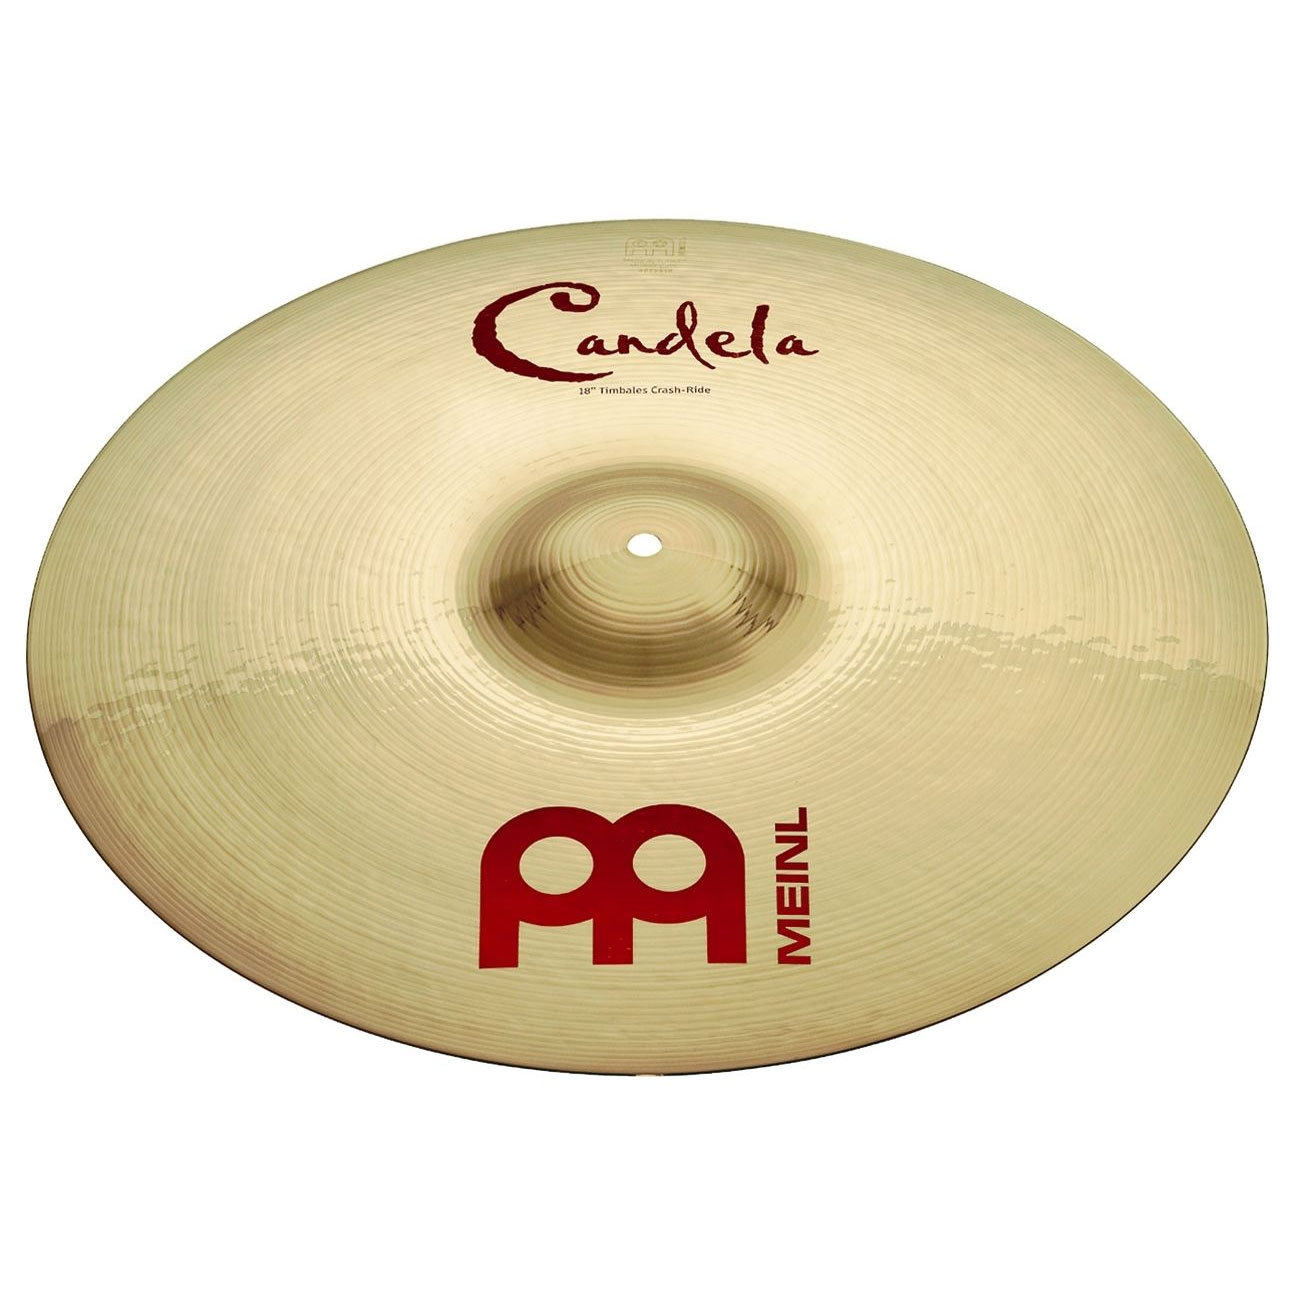 "Meinl 16"" Candela Percussion Crash Cymbal"